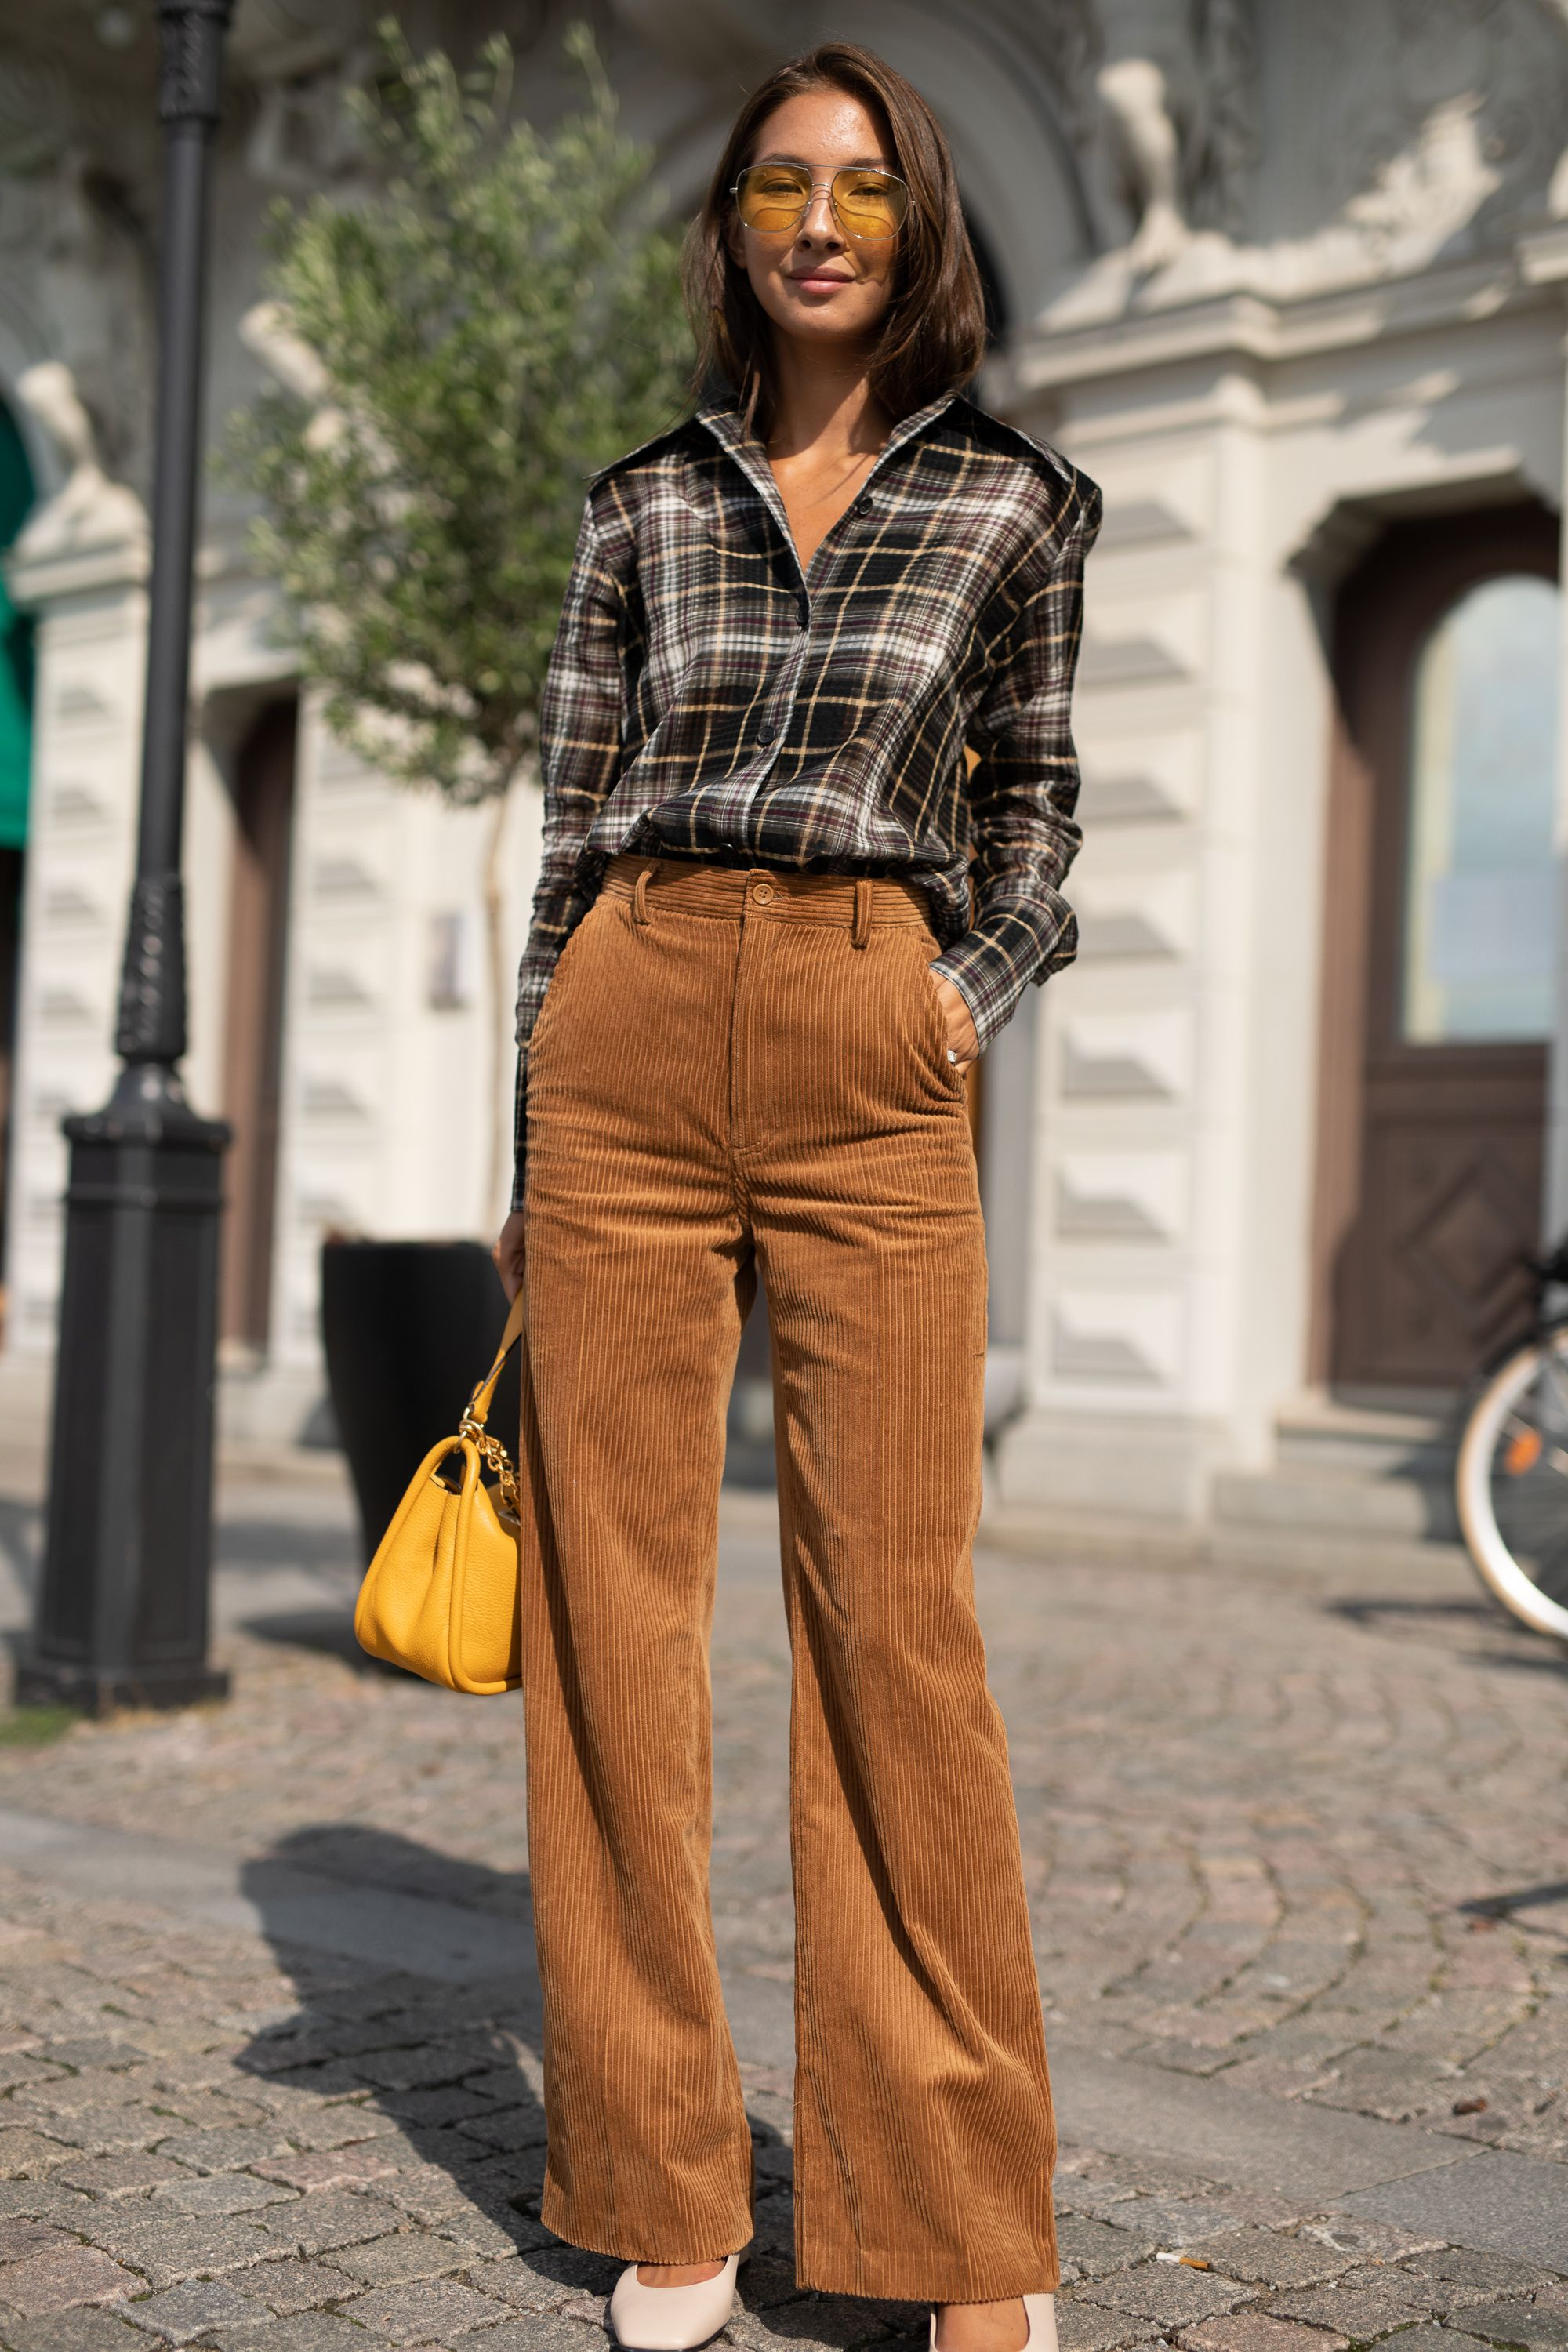 16 Flannel Shirt Outfits For Women How To Wear A Flannel Shirt